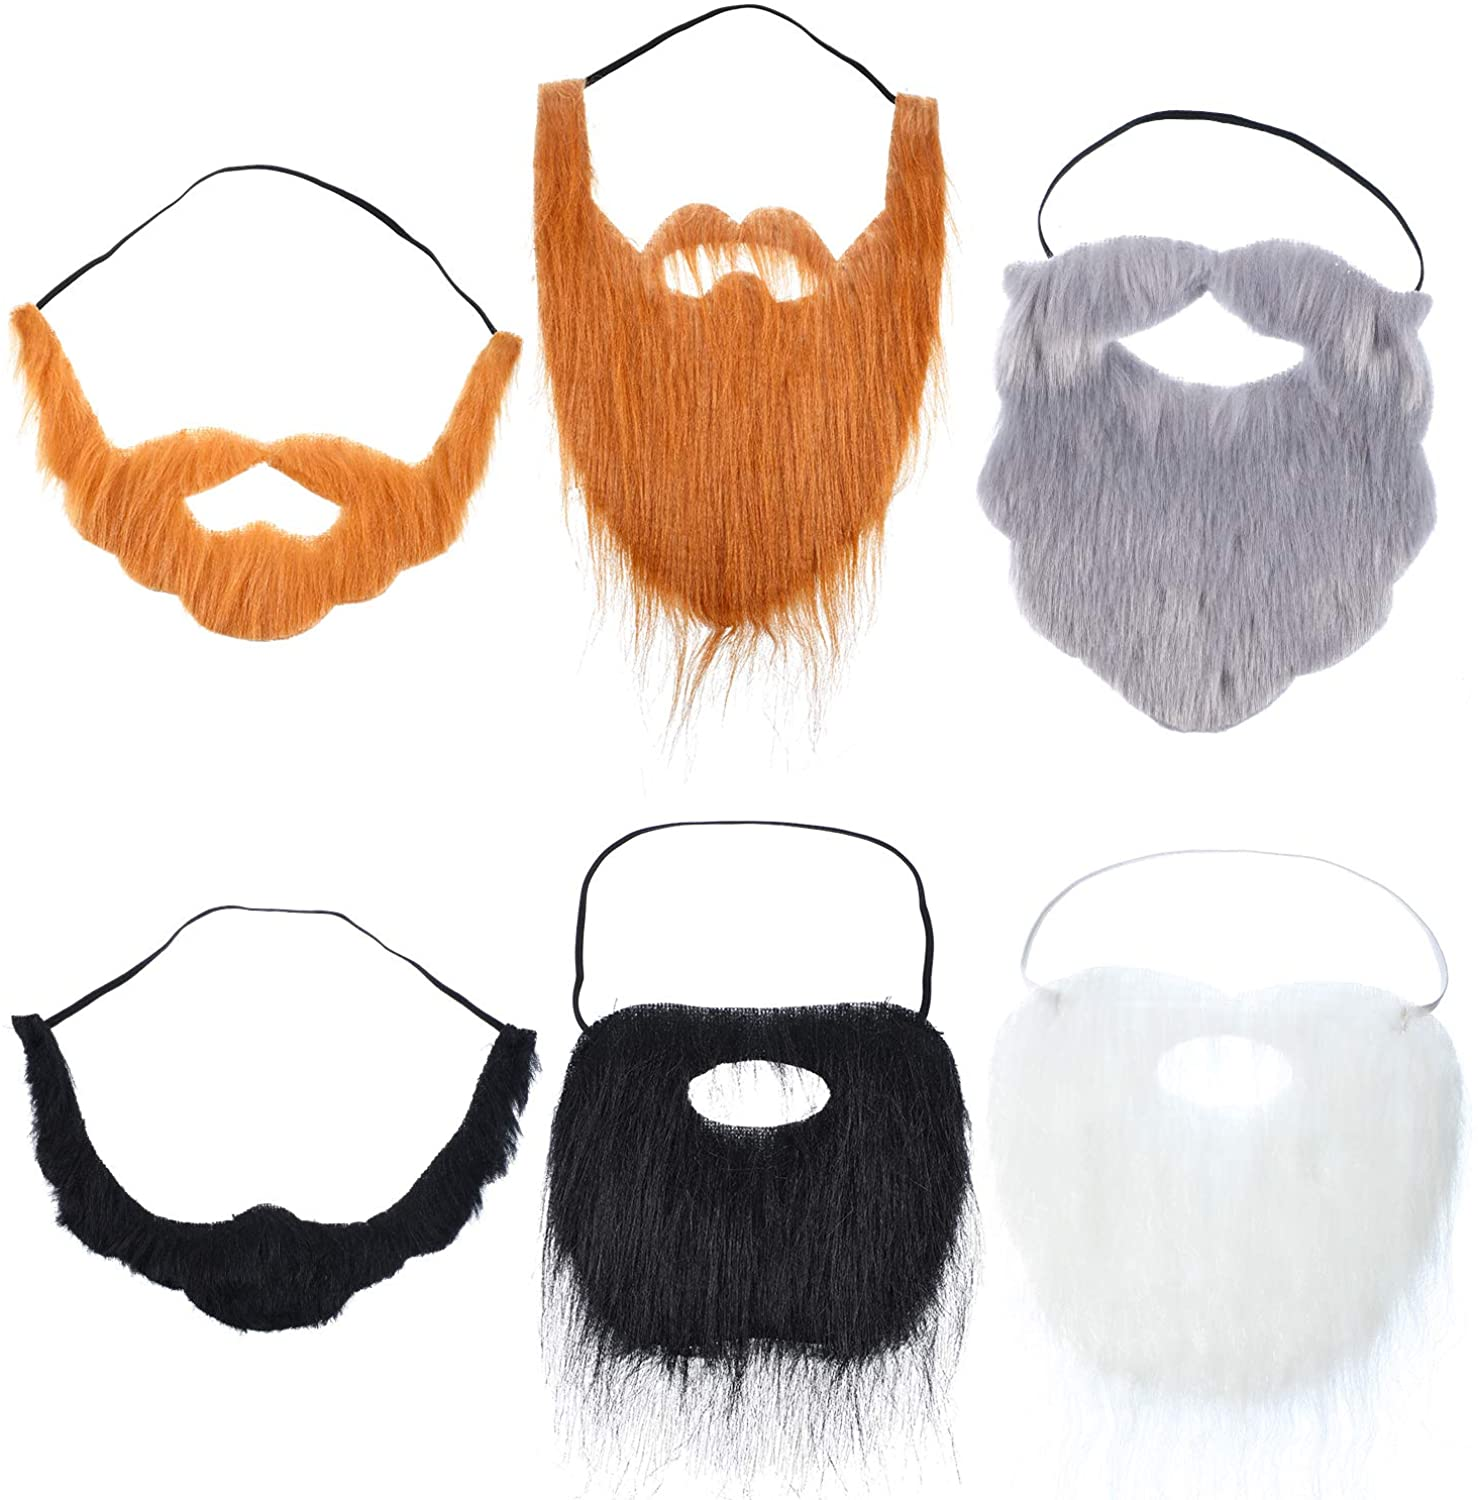 WILLBOND 6 Pieces Fake Beards Mustaches Halloween Beard Funny Fake Beard Costume Accessories Party Supplies for Adult Kids